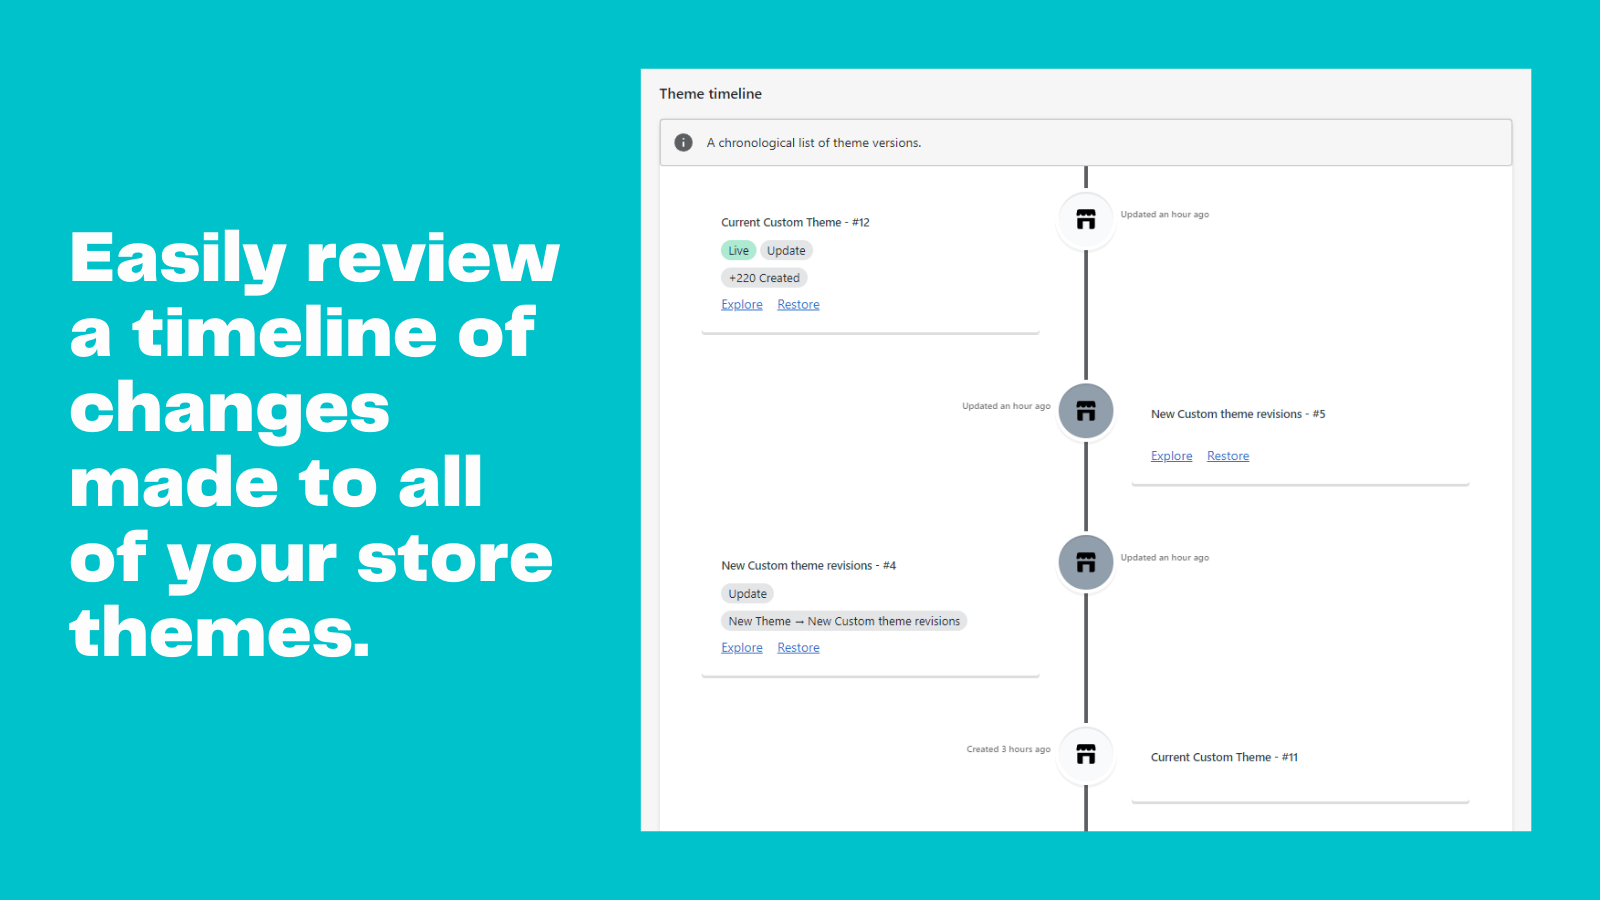 Easily review a timeline of changes made to your store themes